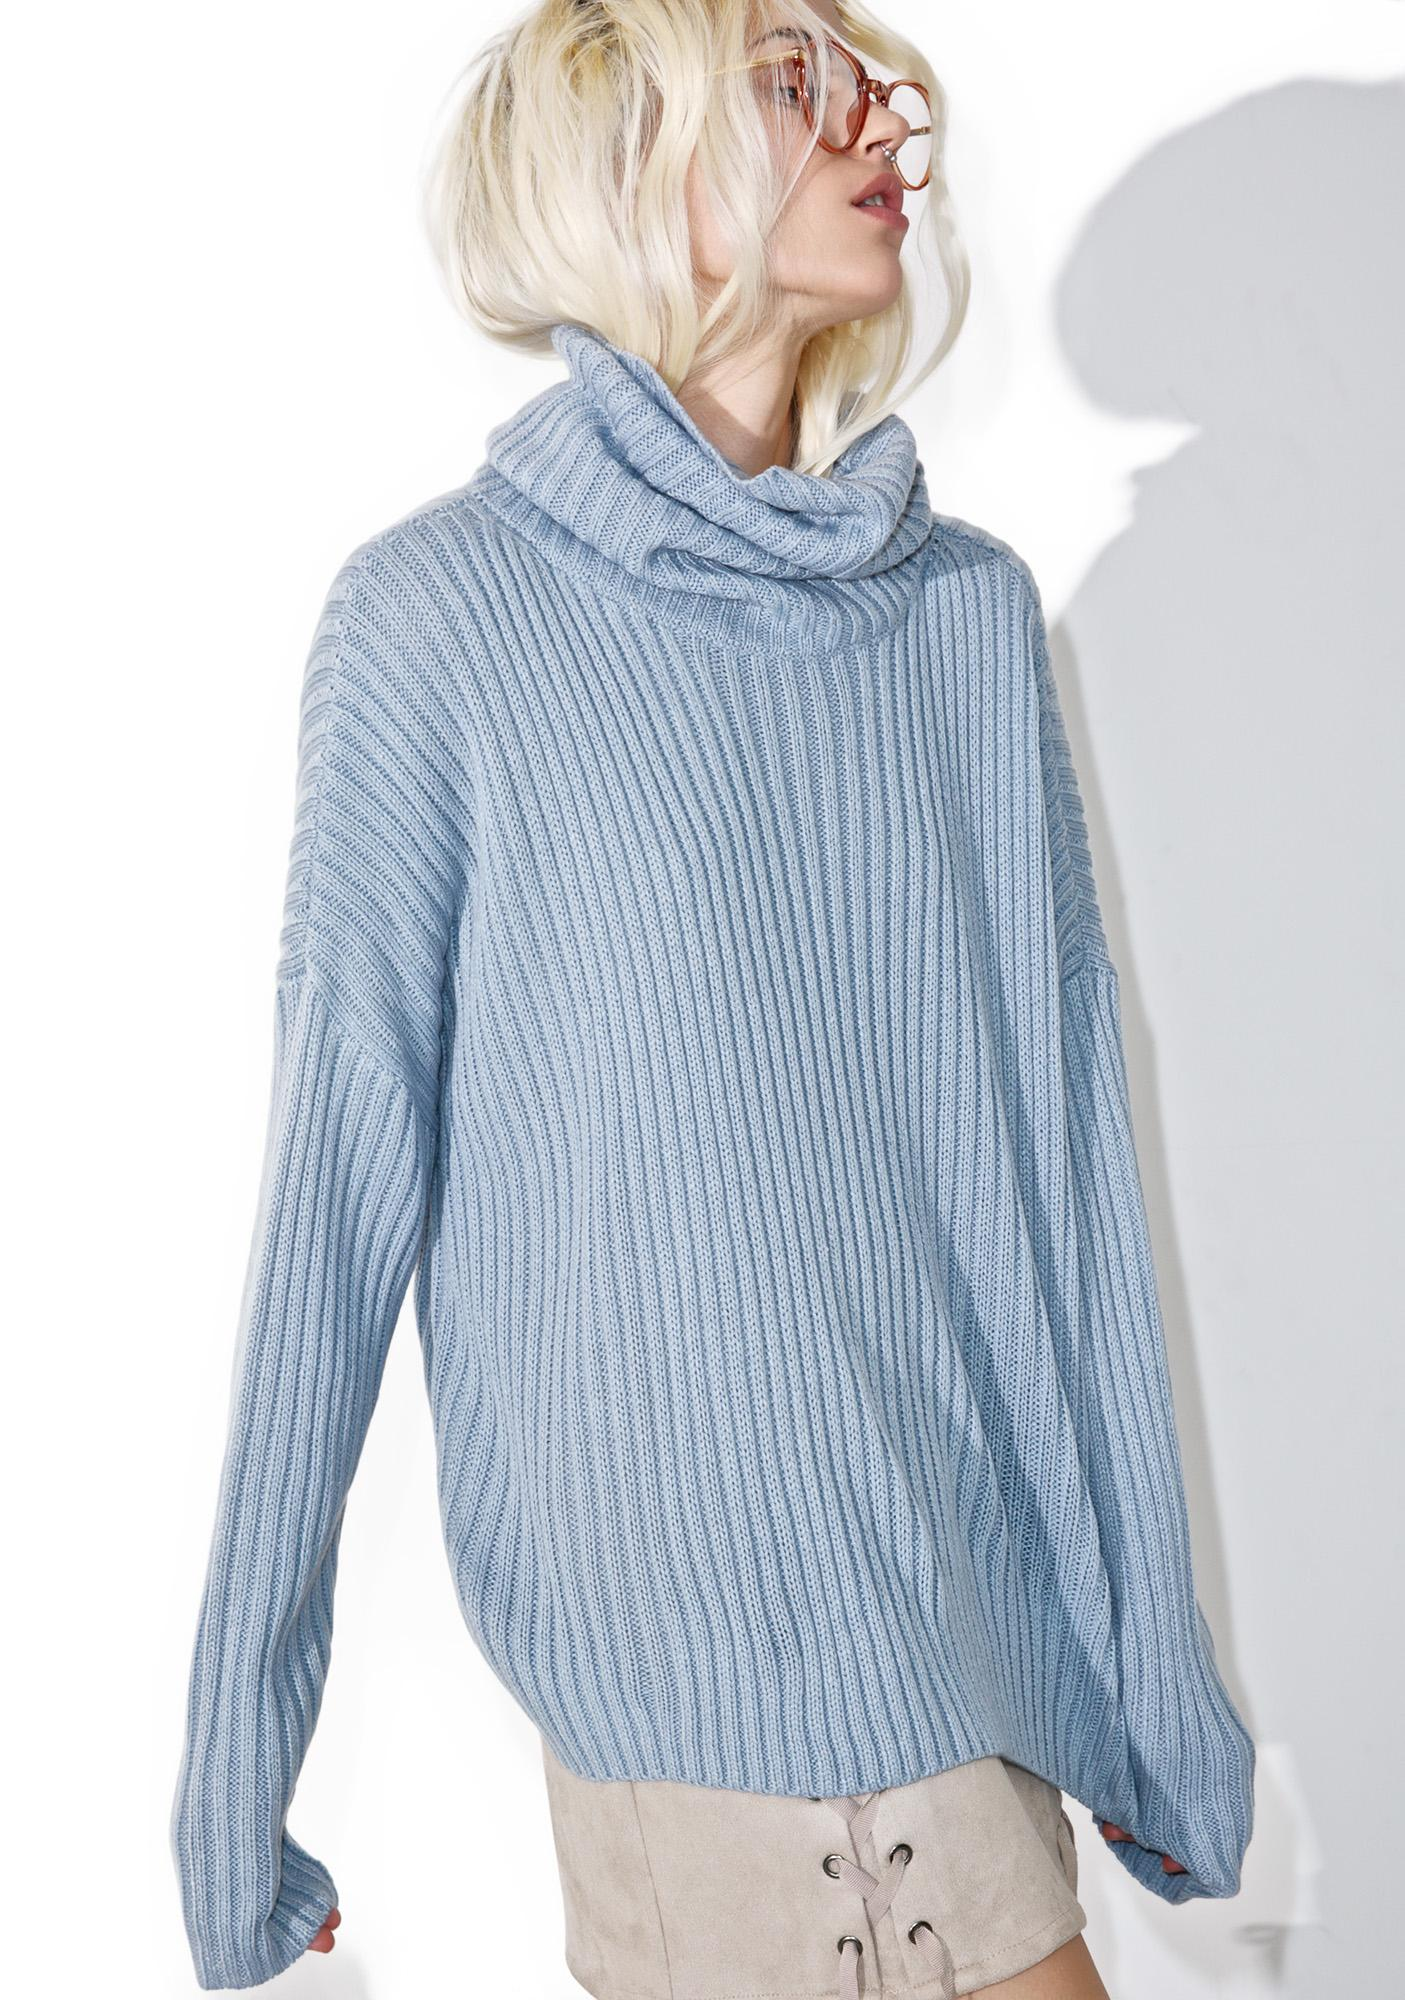 Morning Glory Turtleneck Sweater